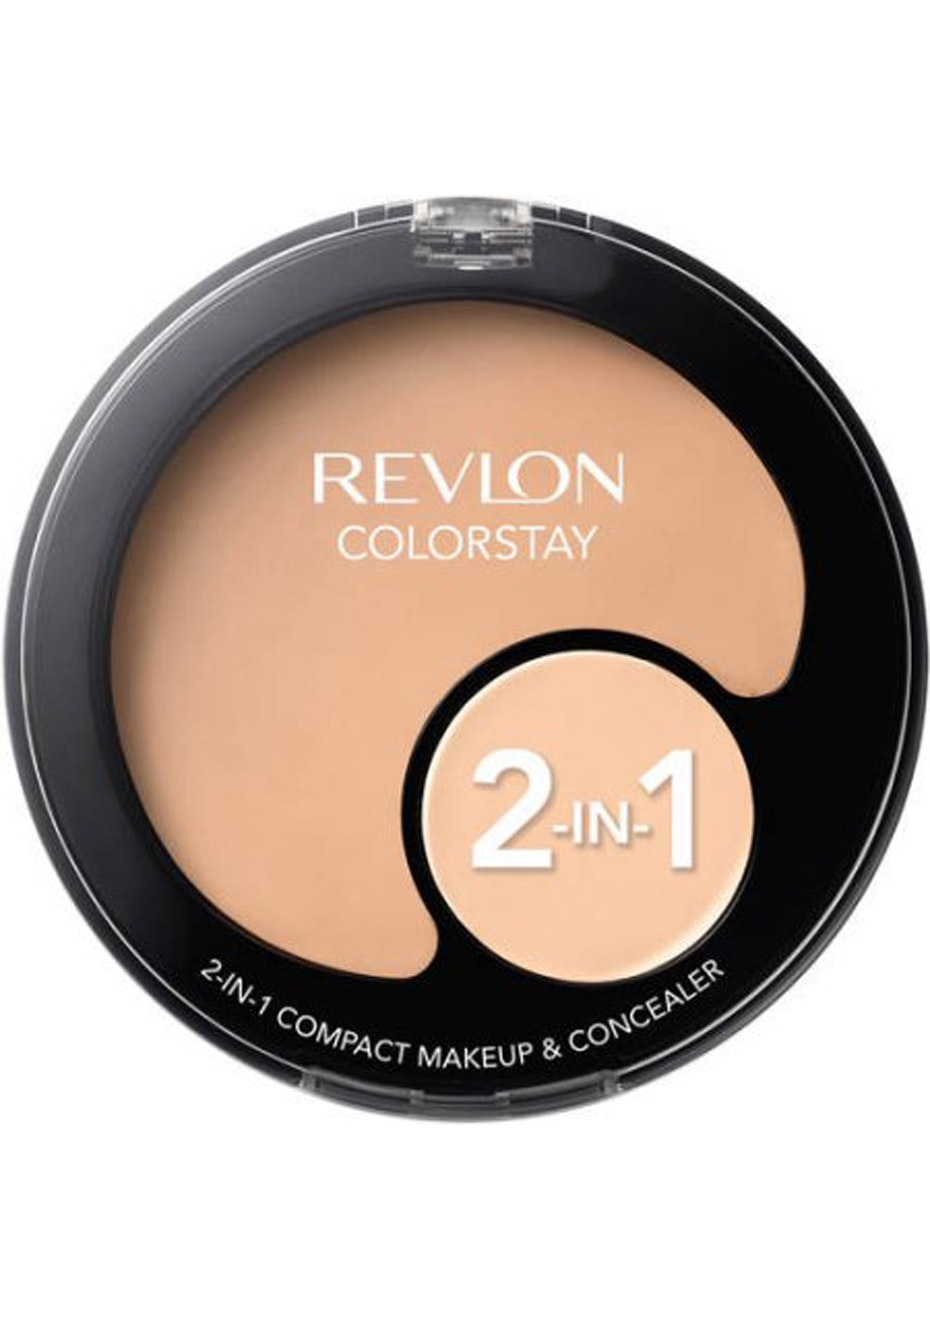 Revlon Colorstay 2in1 Compact Makeup And Concealer 110 Ivory